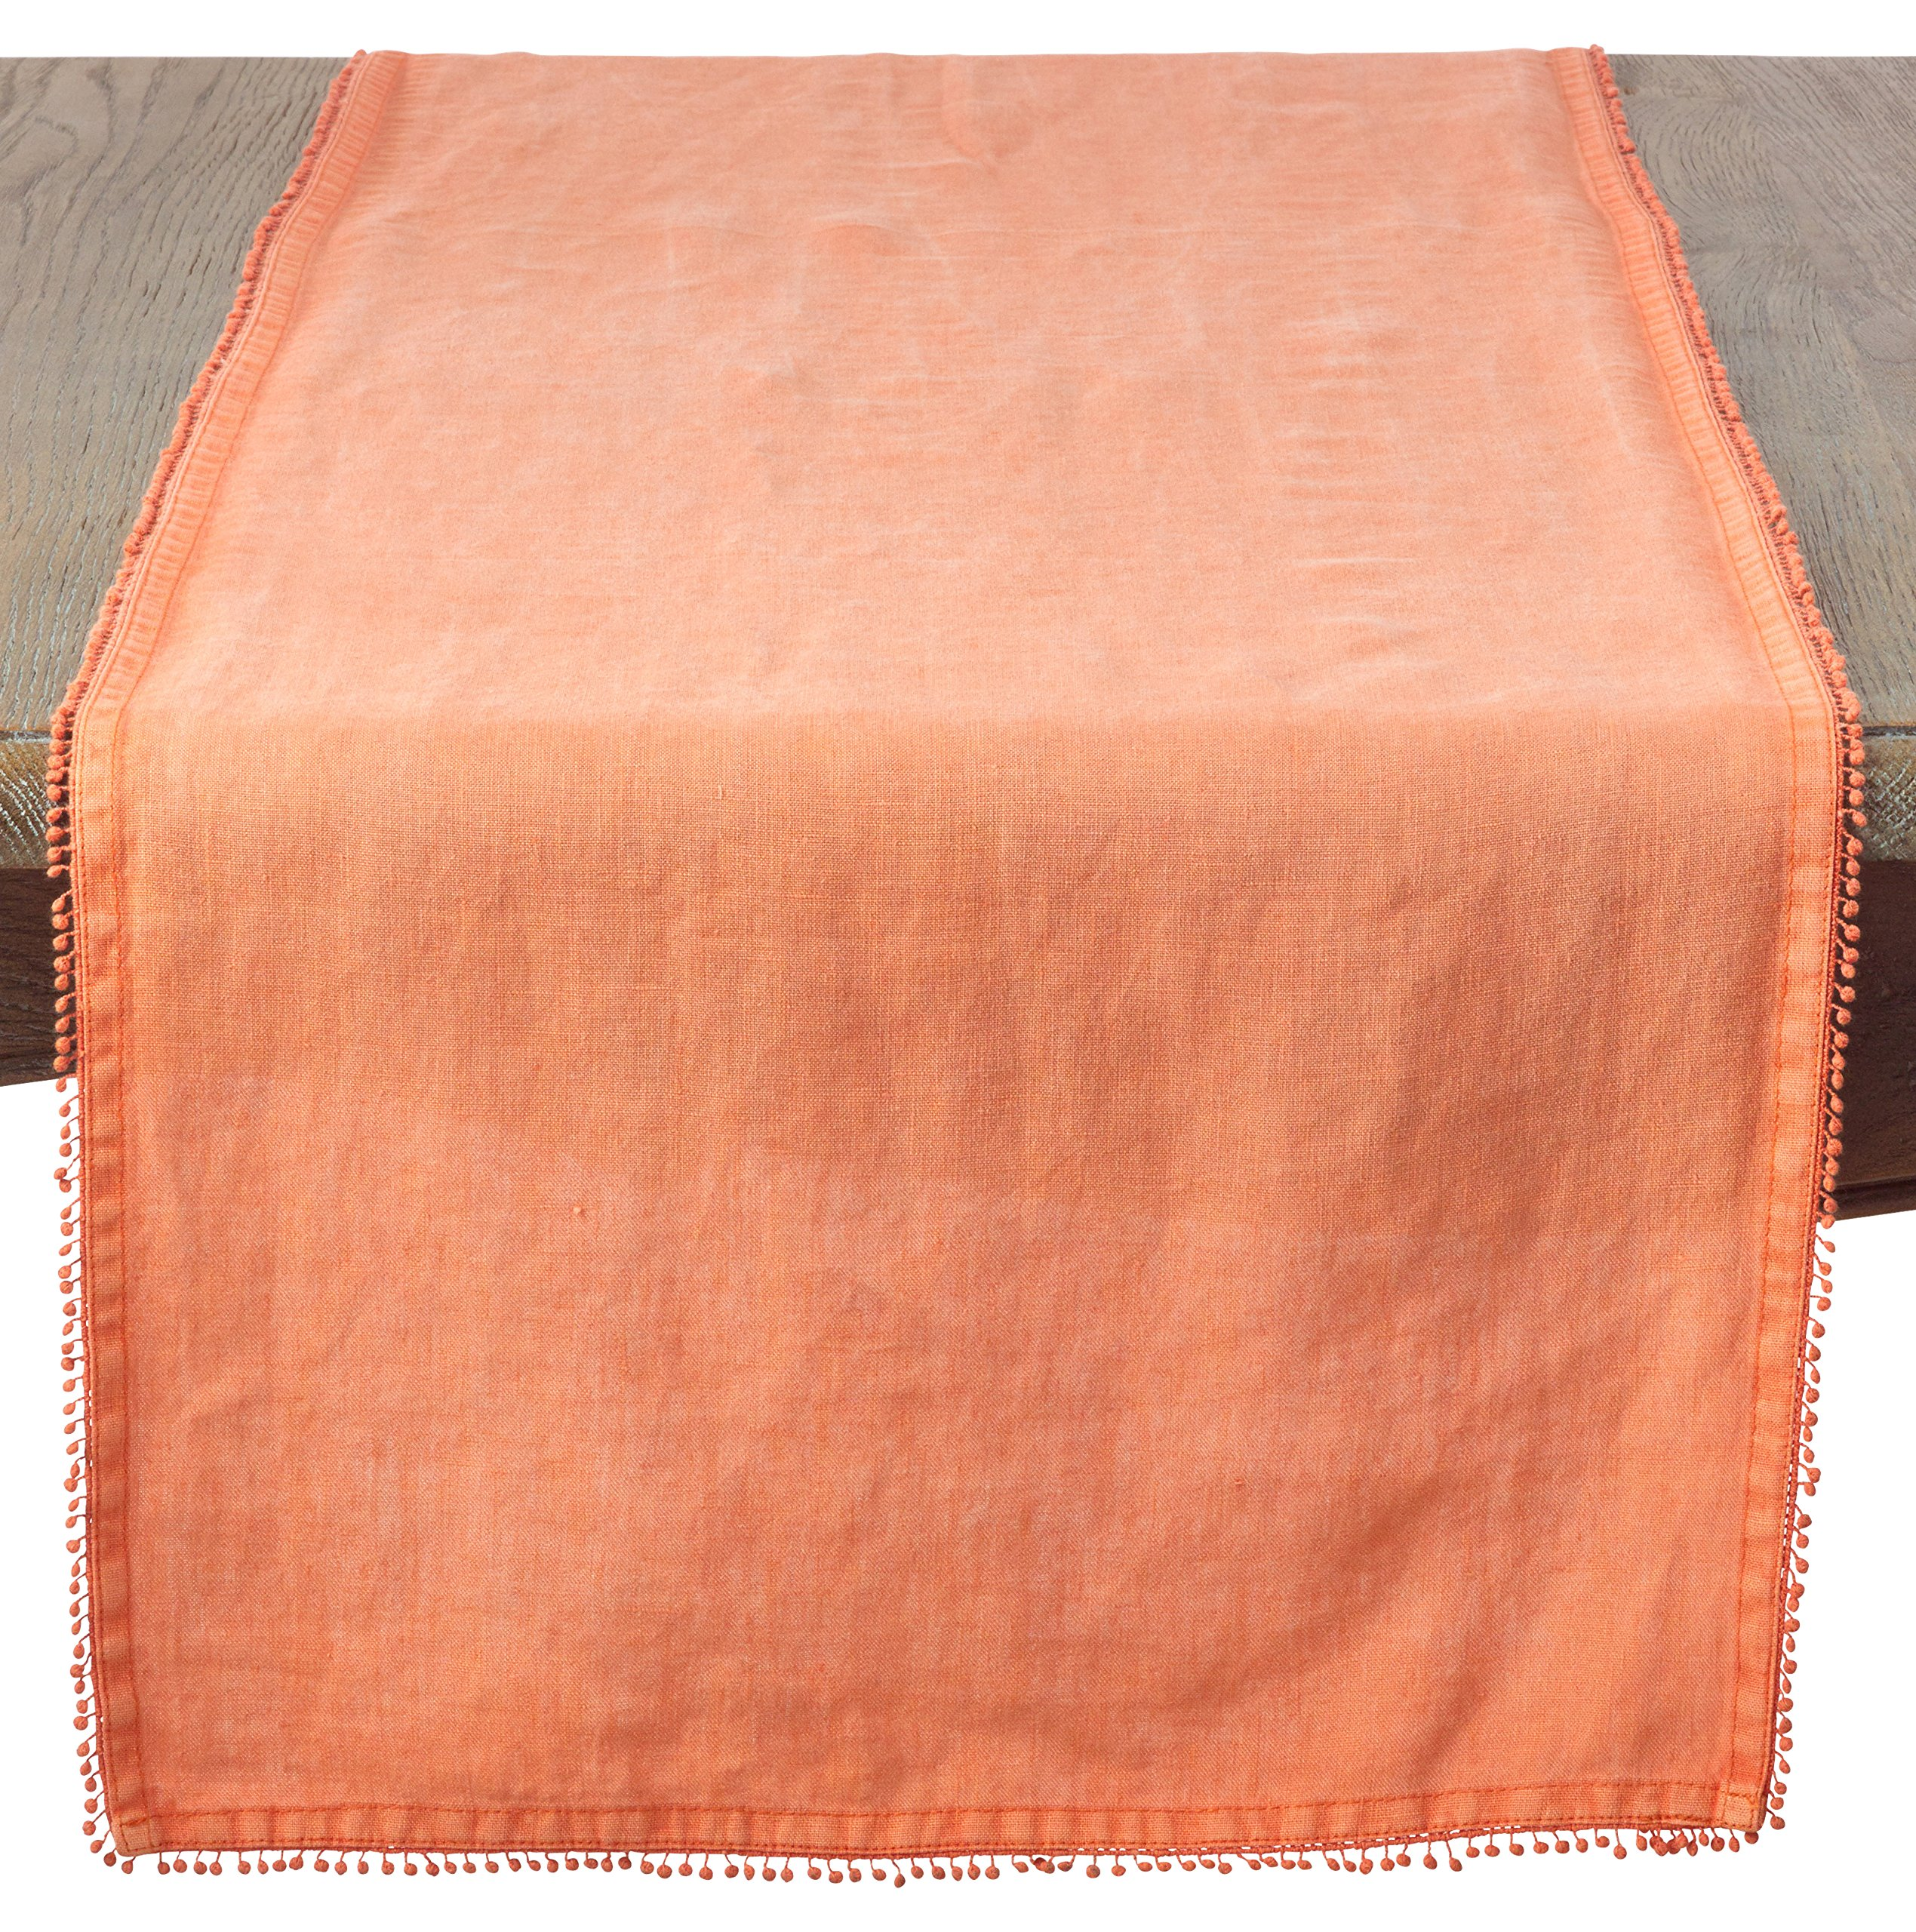 SARO LIFESTYLE Pomponin Collection 100% Linen Table Runner with Pompom Edges, 16'' x 72'', Pumpkin